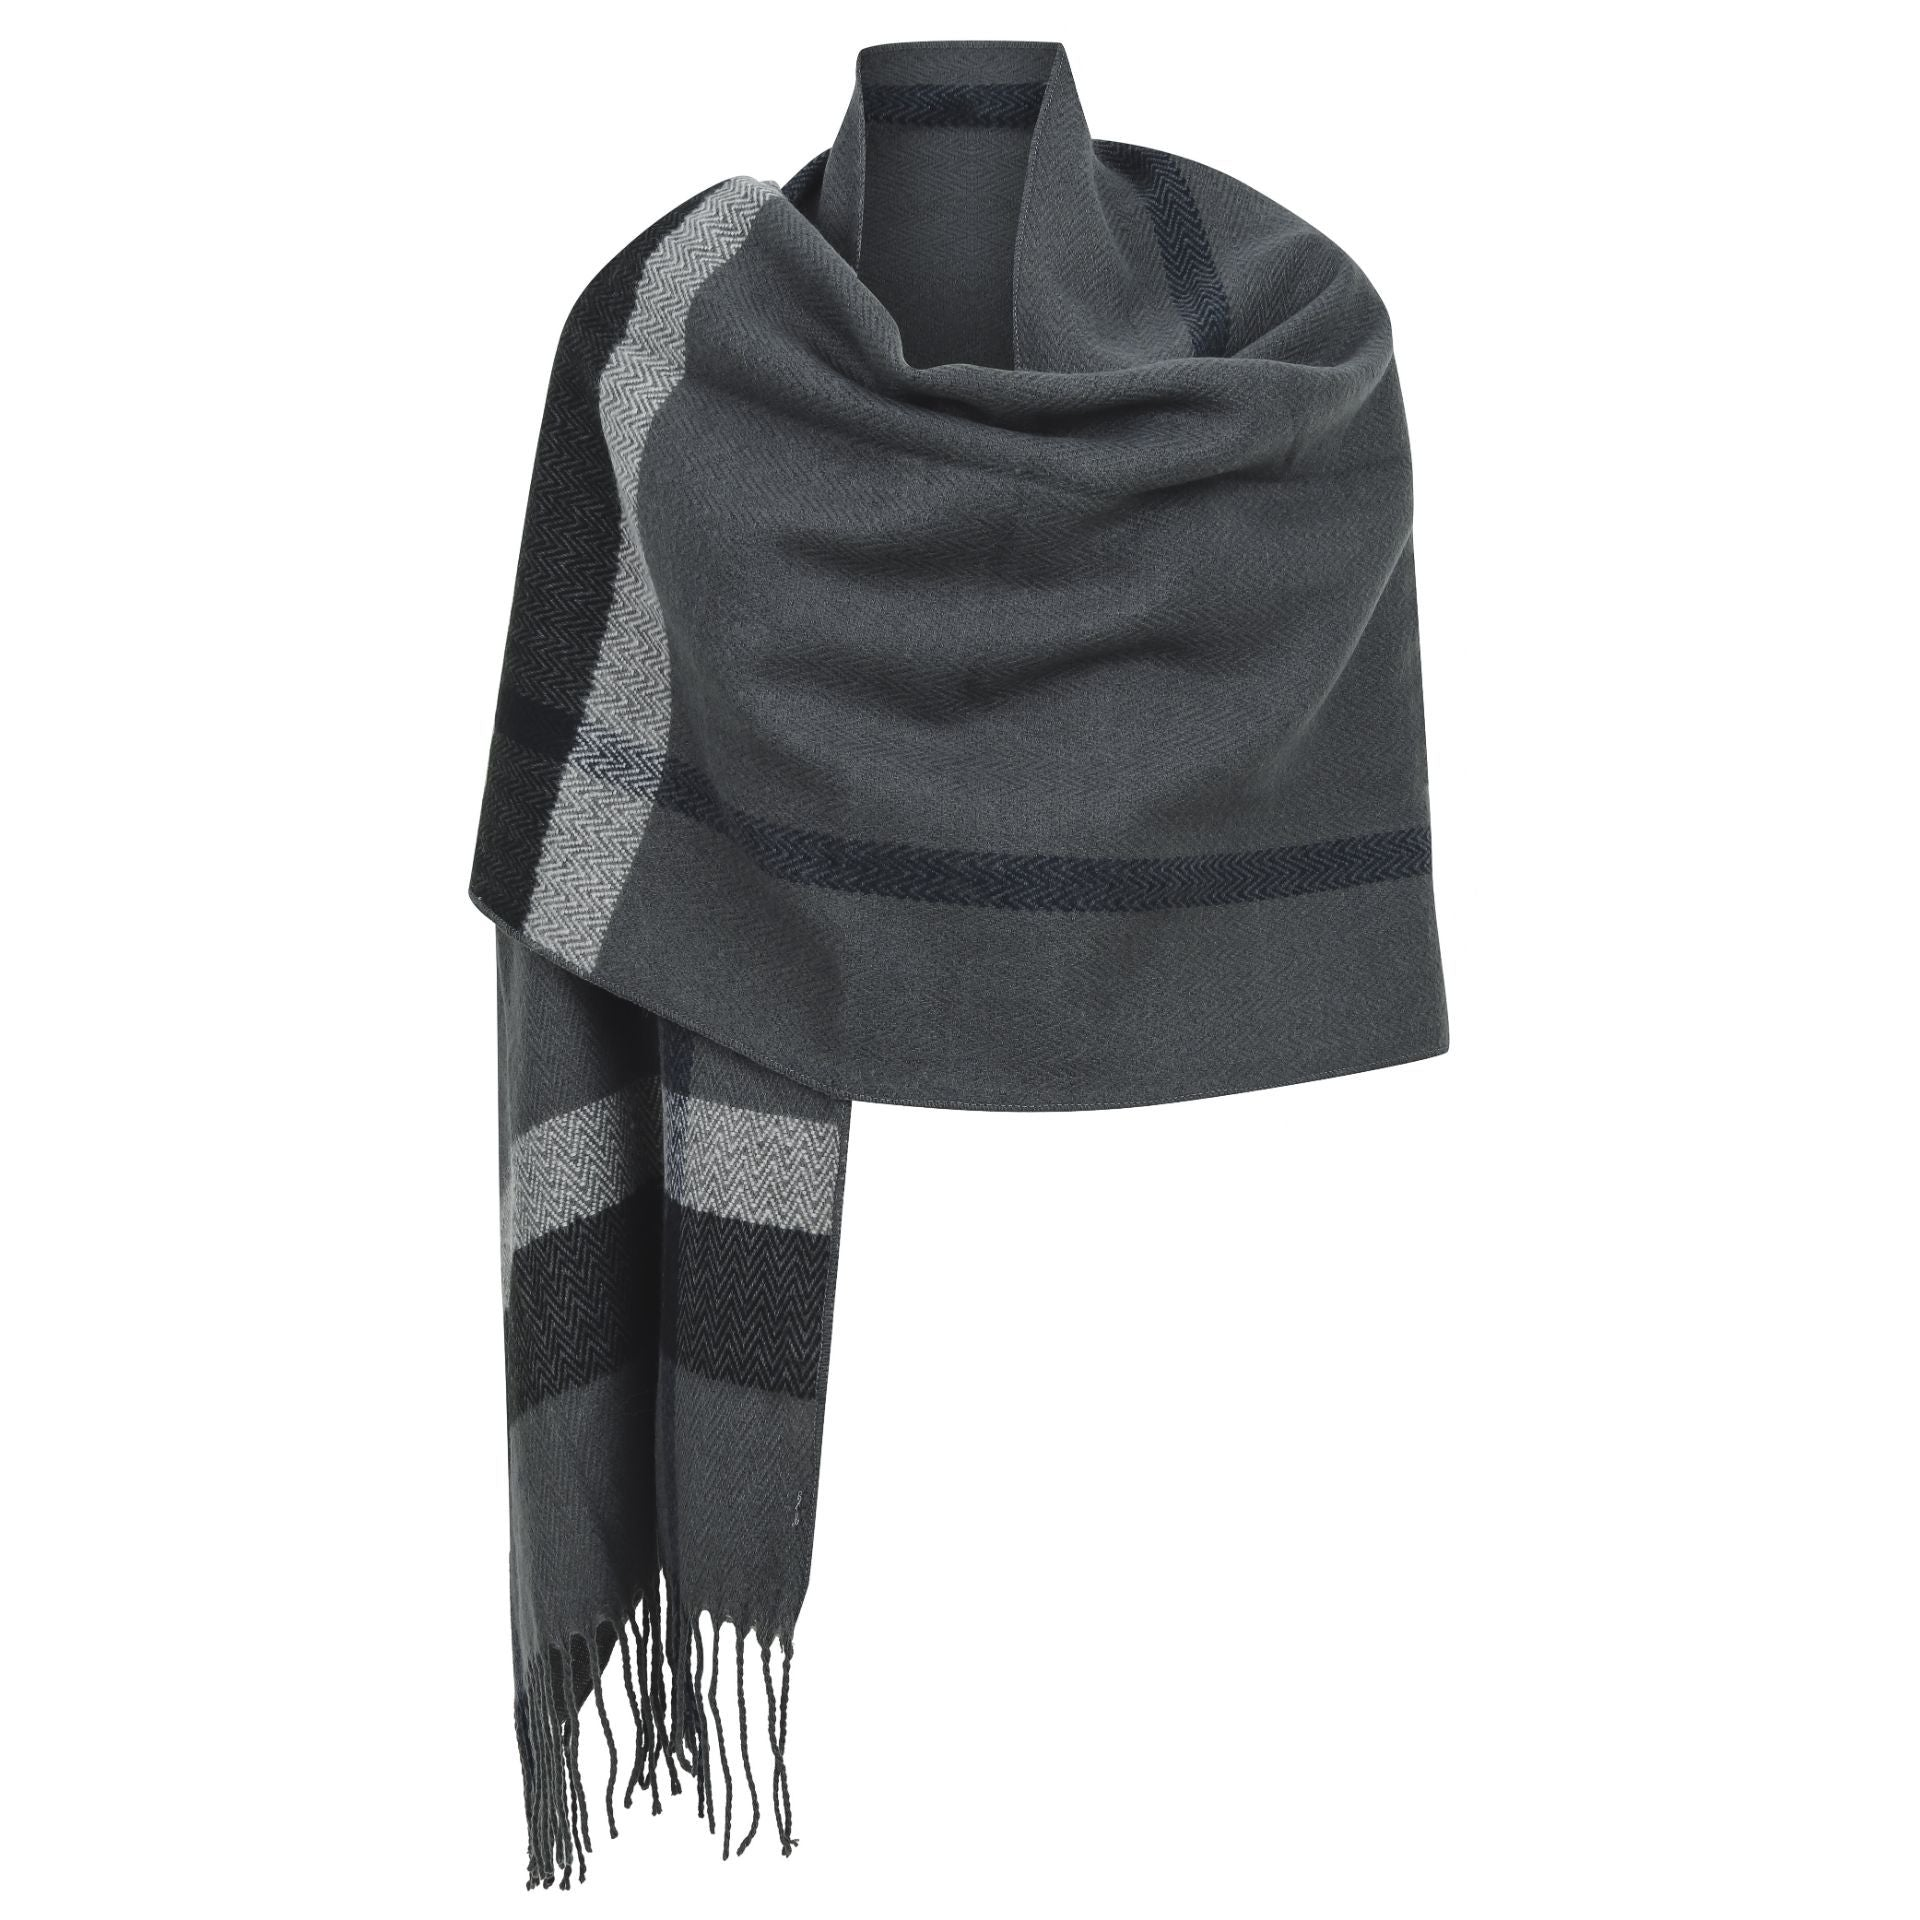 East Village Logan Scarf - grey with black & grey border line